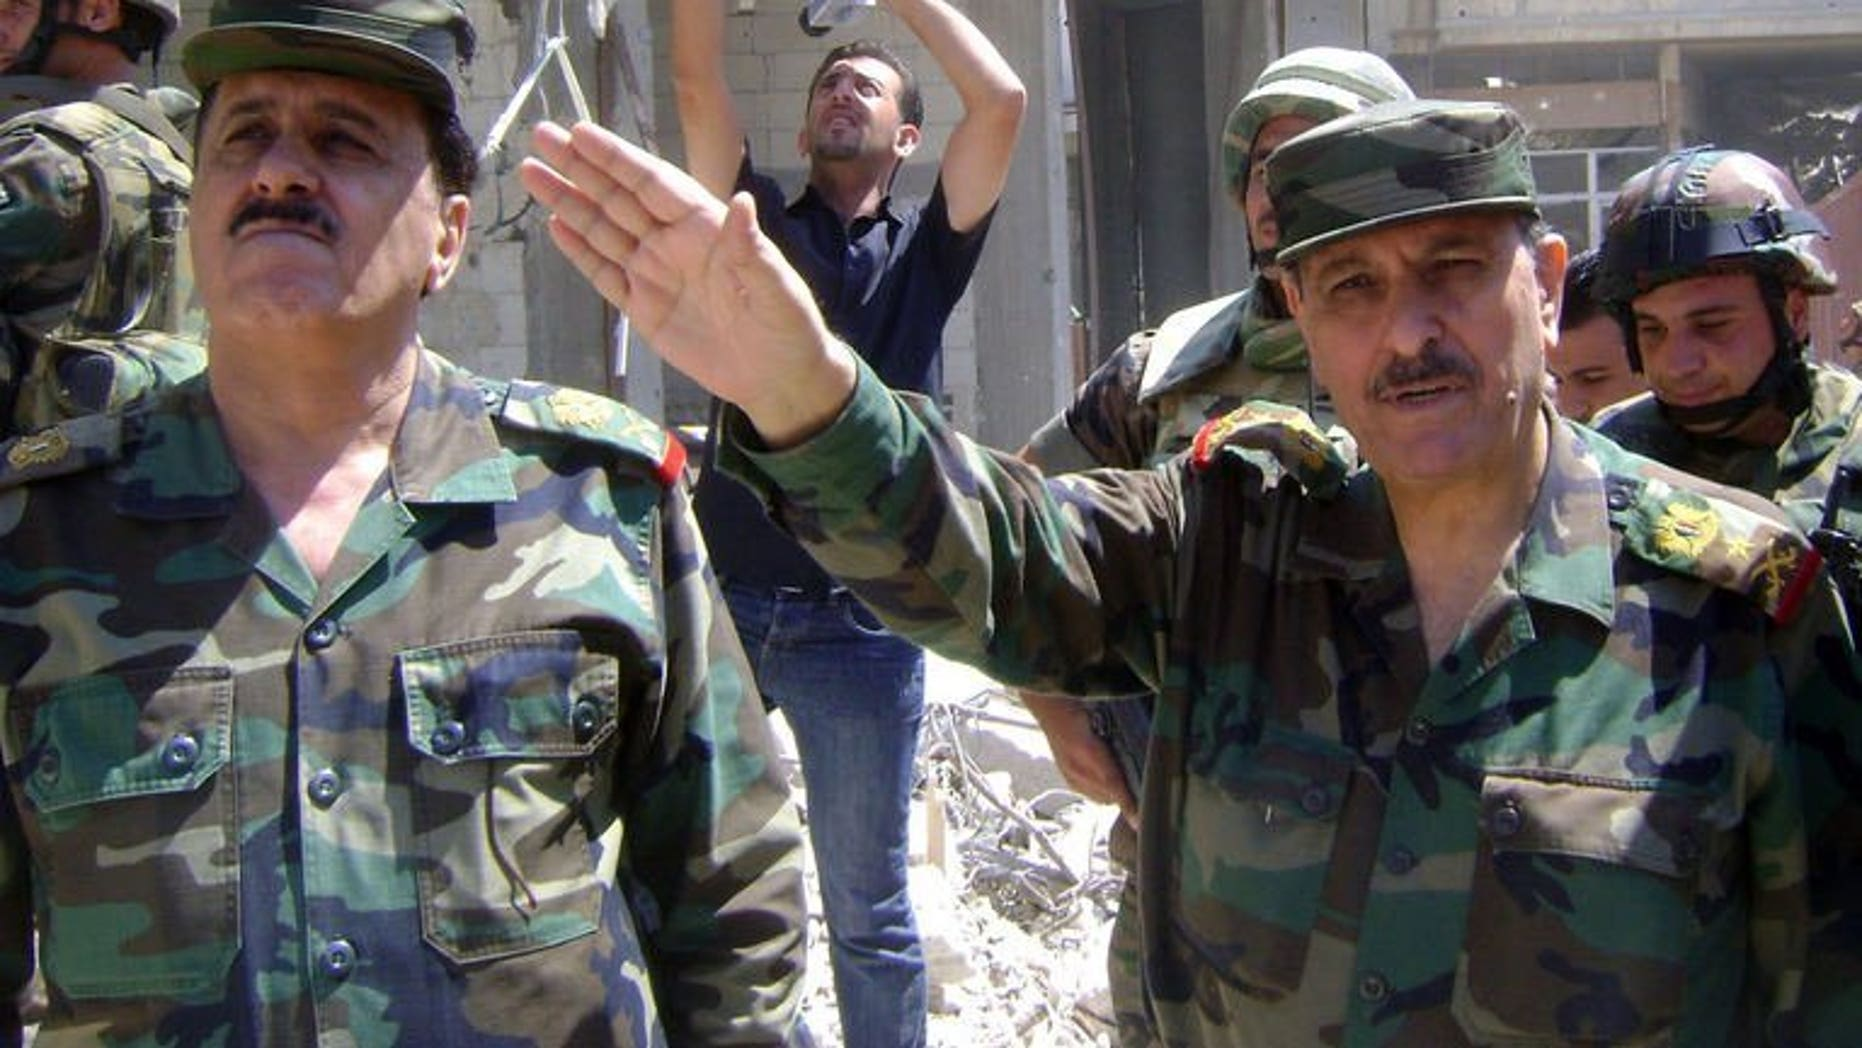 Picture released by the Syrian Arab News Agency (SANA) on August 5, 2013 shows Syrian general Fahd al-Freij (R), Defence minister and chief of the armed forces, talking to the media in the district of Khalidiyah in the central Syrian city of Homs. Freij visited army troops in Khaldiyeh, a district the army won back from rebel control in late July, state news agency SANA said on Monday.